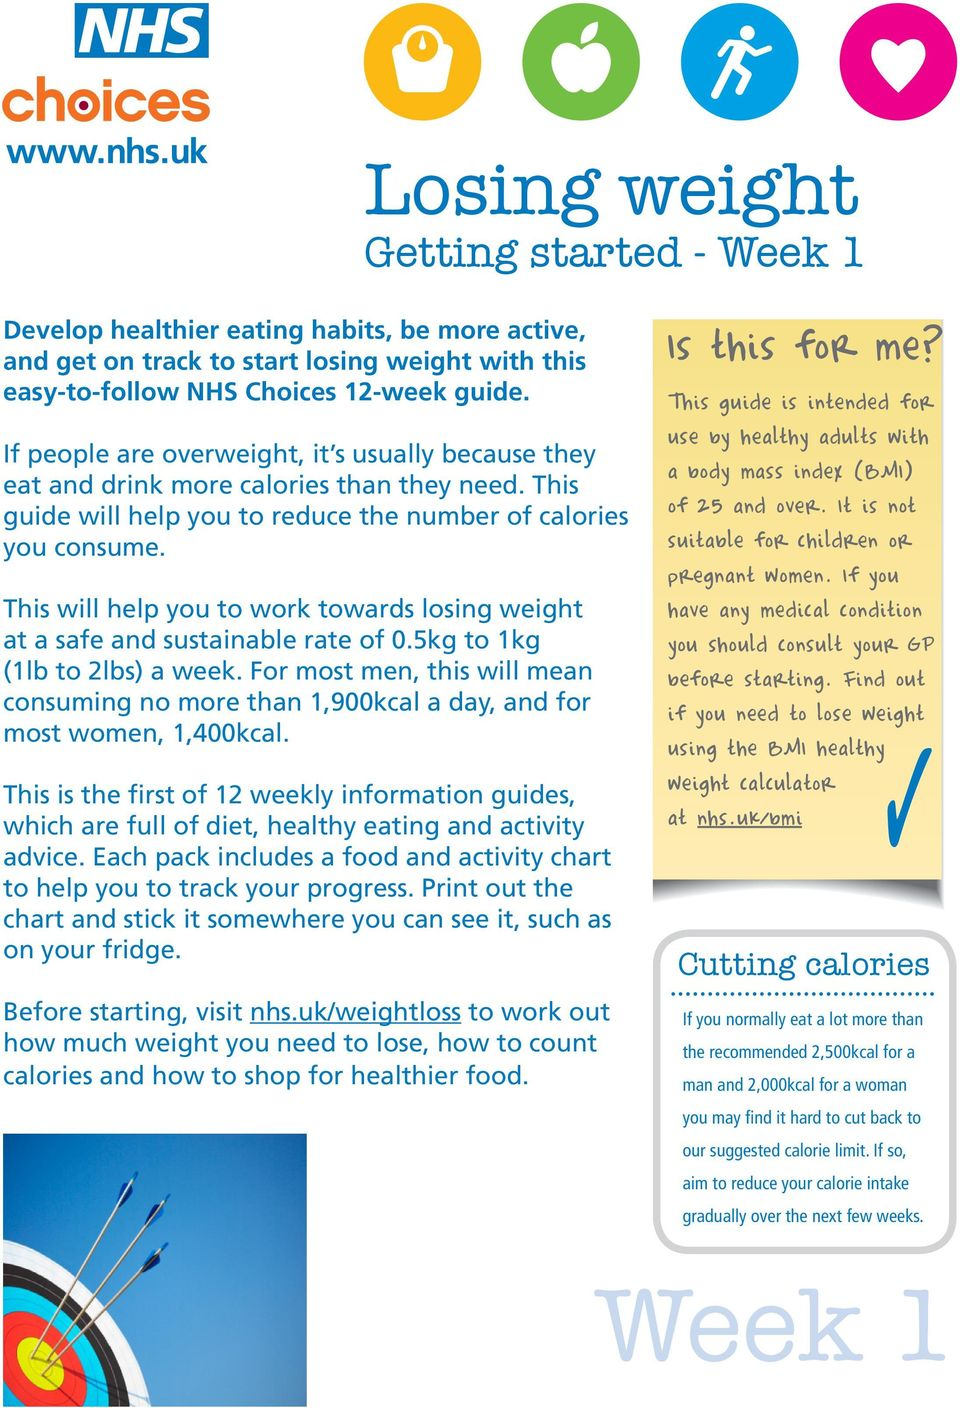 This will help you to work towards losing weight at a safe and sustainable rate of 0.5kg to 1kg (1lb to 2lbs) a week.